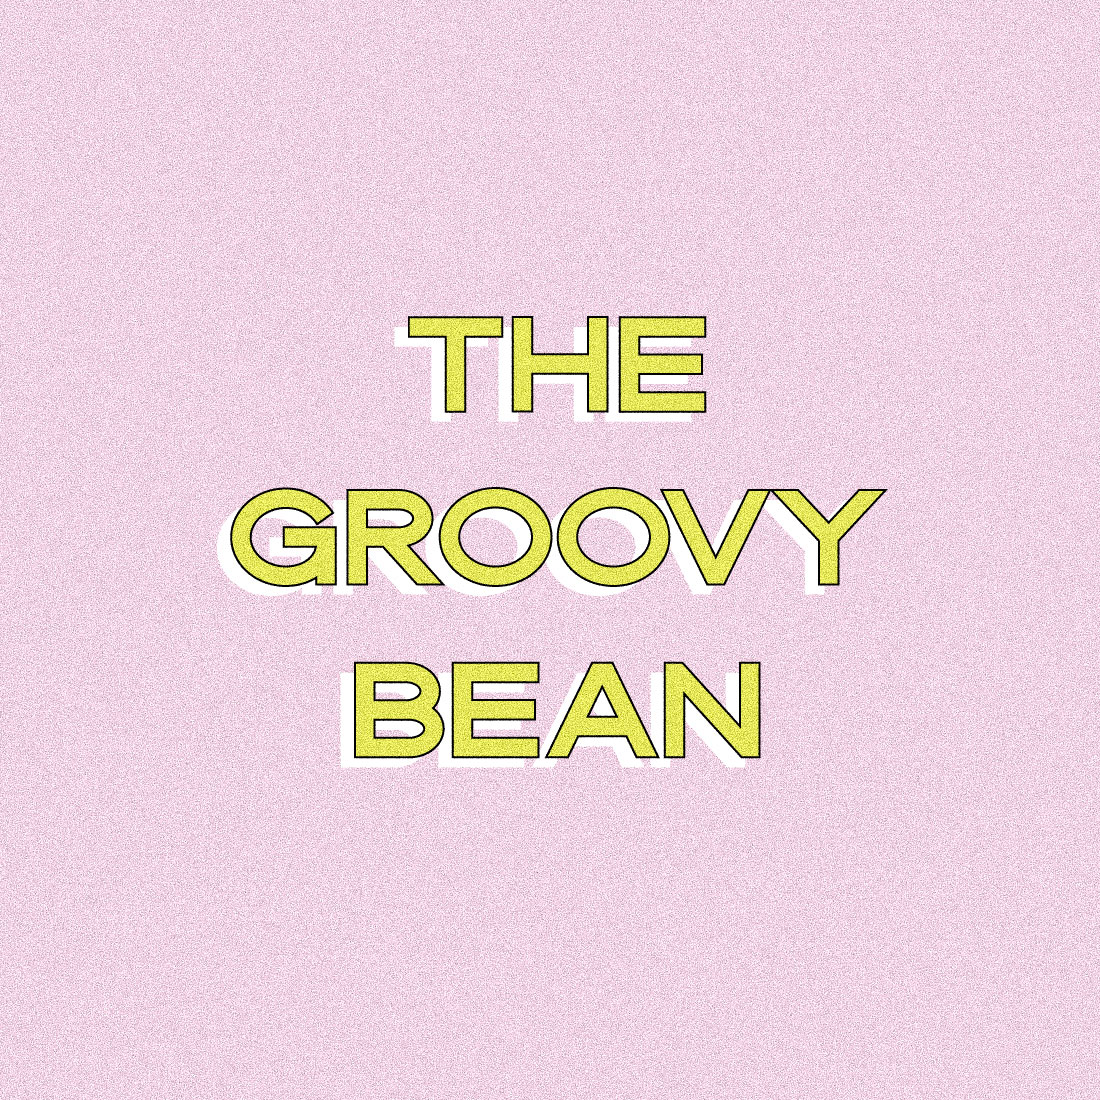 The Groovy Bean Branding